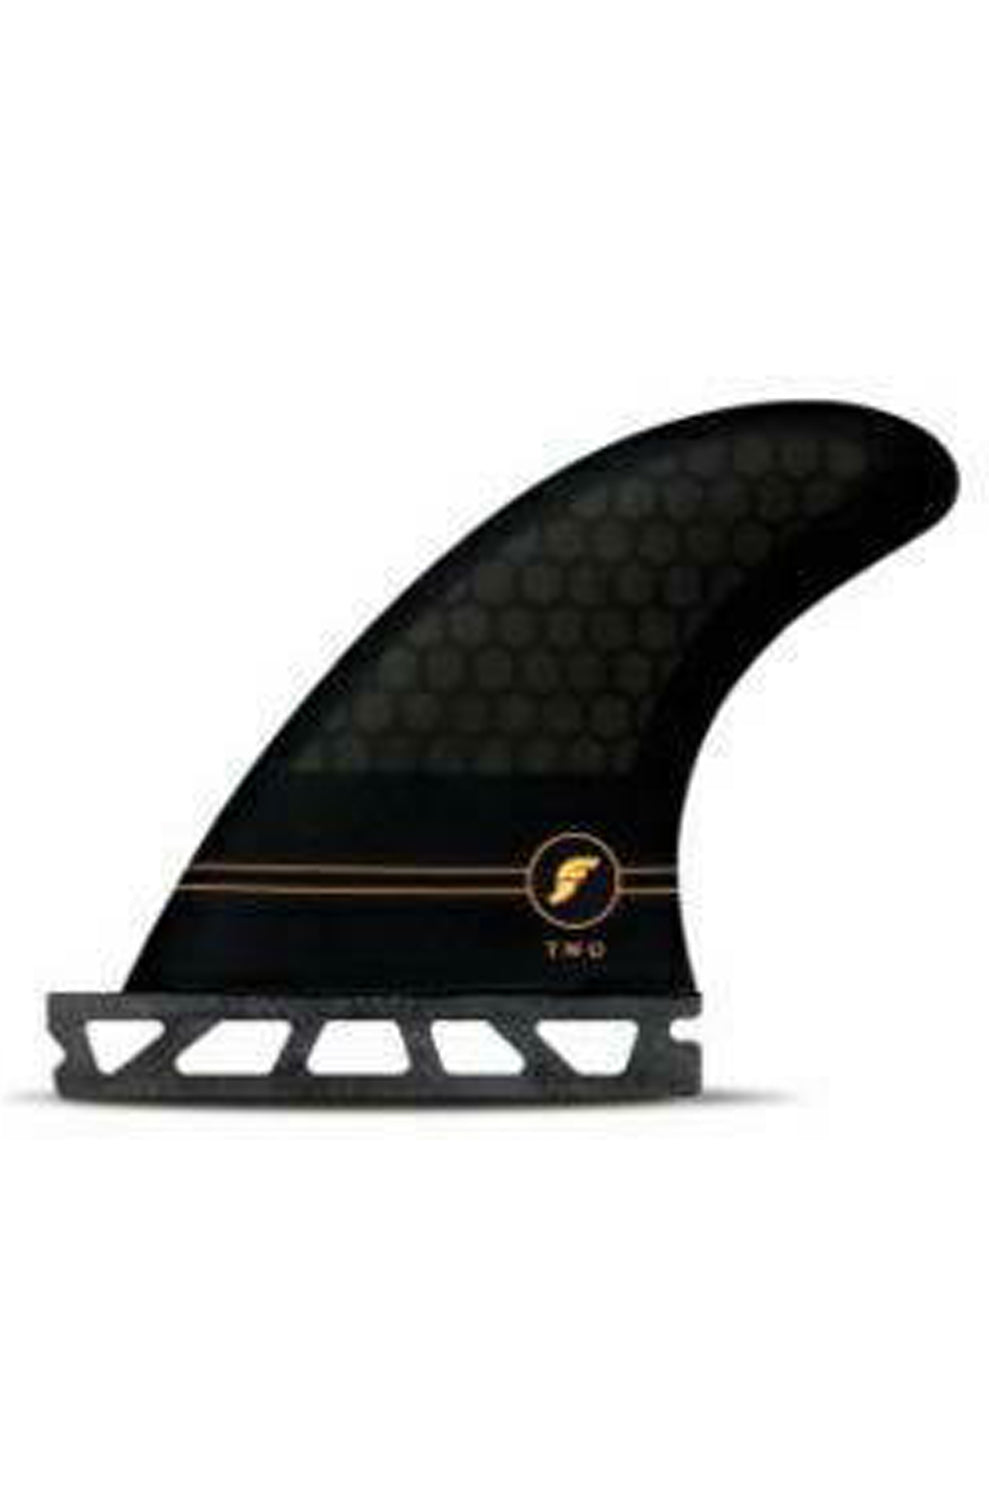 Futures F2 HC Smoke Tri Fin Set